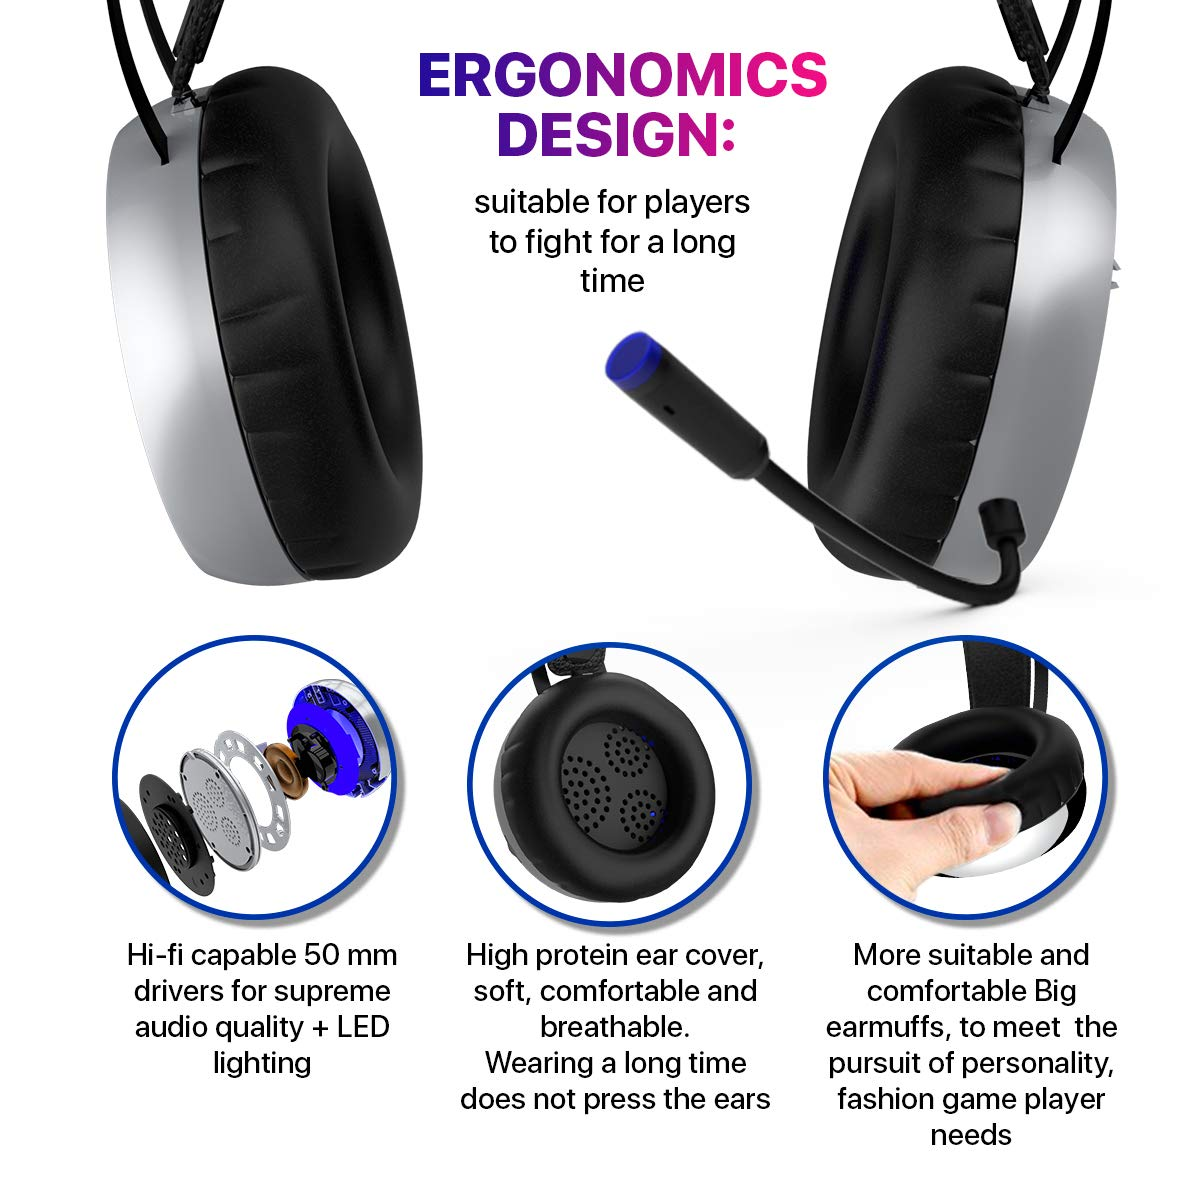 [Newest 2019] Gaming Headset for Xbox One, S, PS4, PC with LED Soft Breathing Earmuffs, Adjustable Microphone, Comfortable Mute & Volume Control, 3.5mm Adapter for Laptop, PS3, Nintendo by TBI Pro (Image #4)